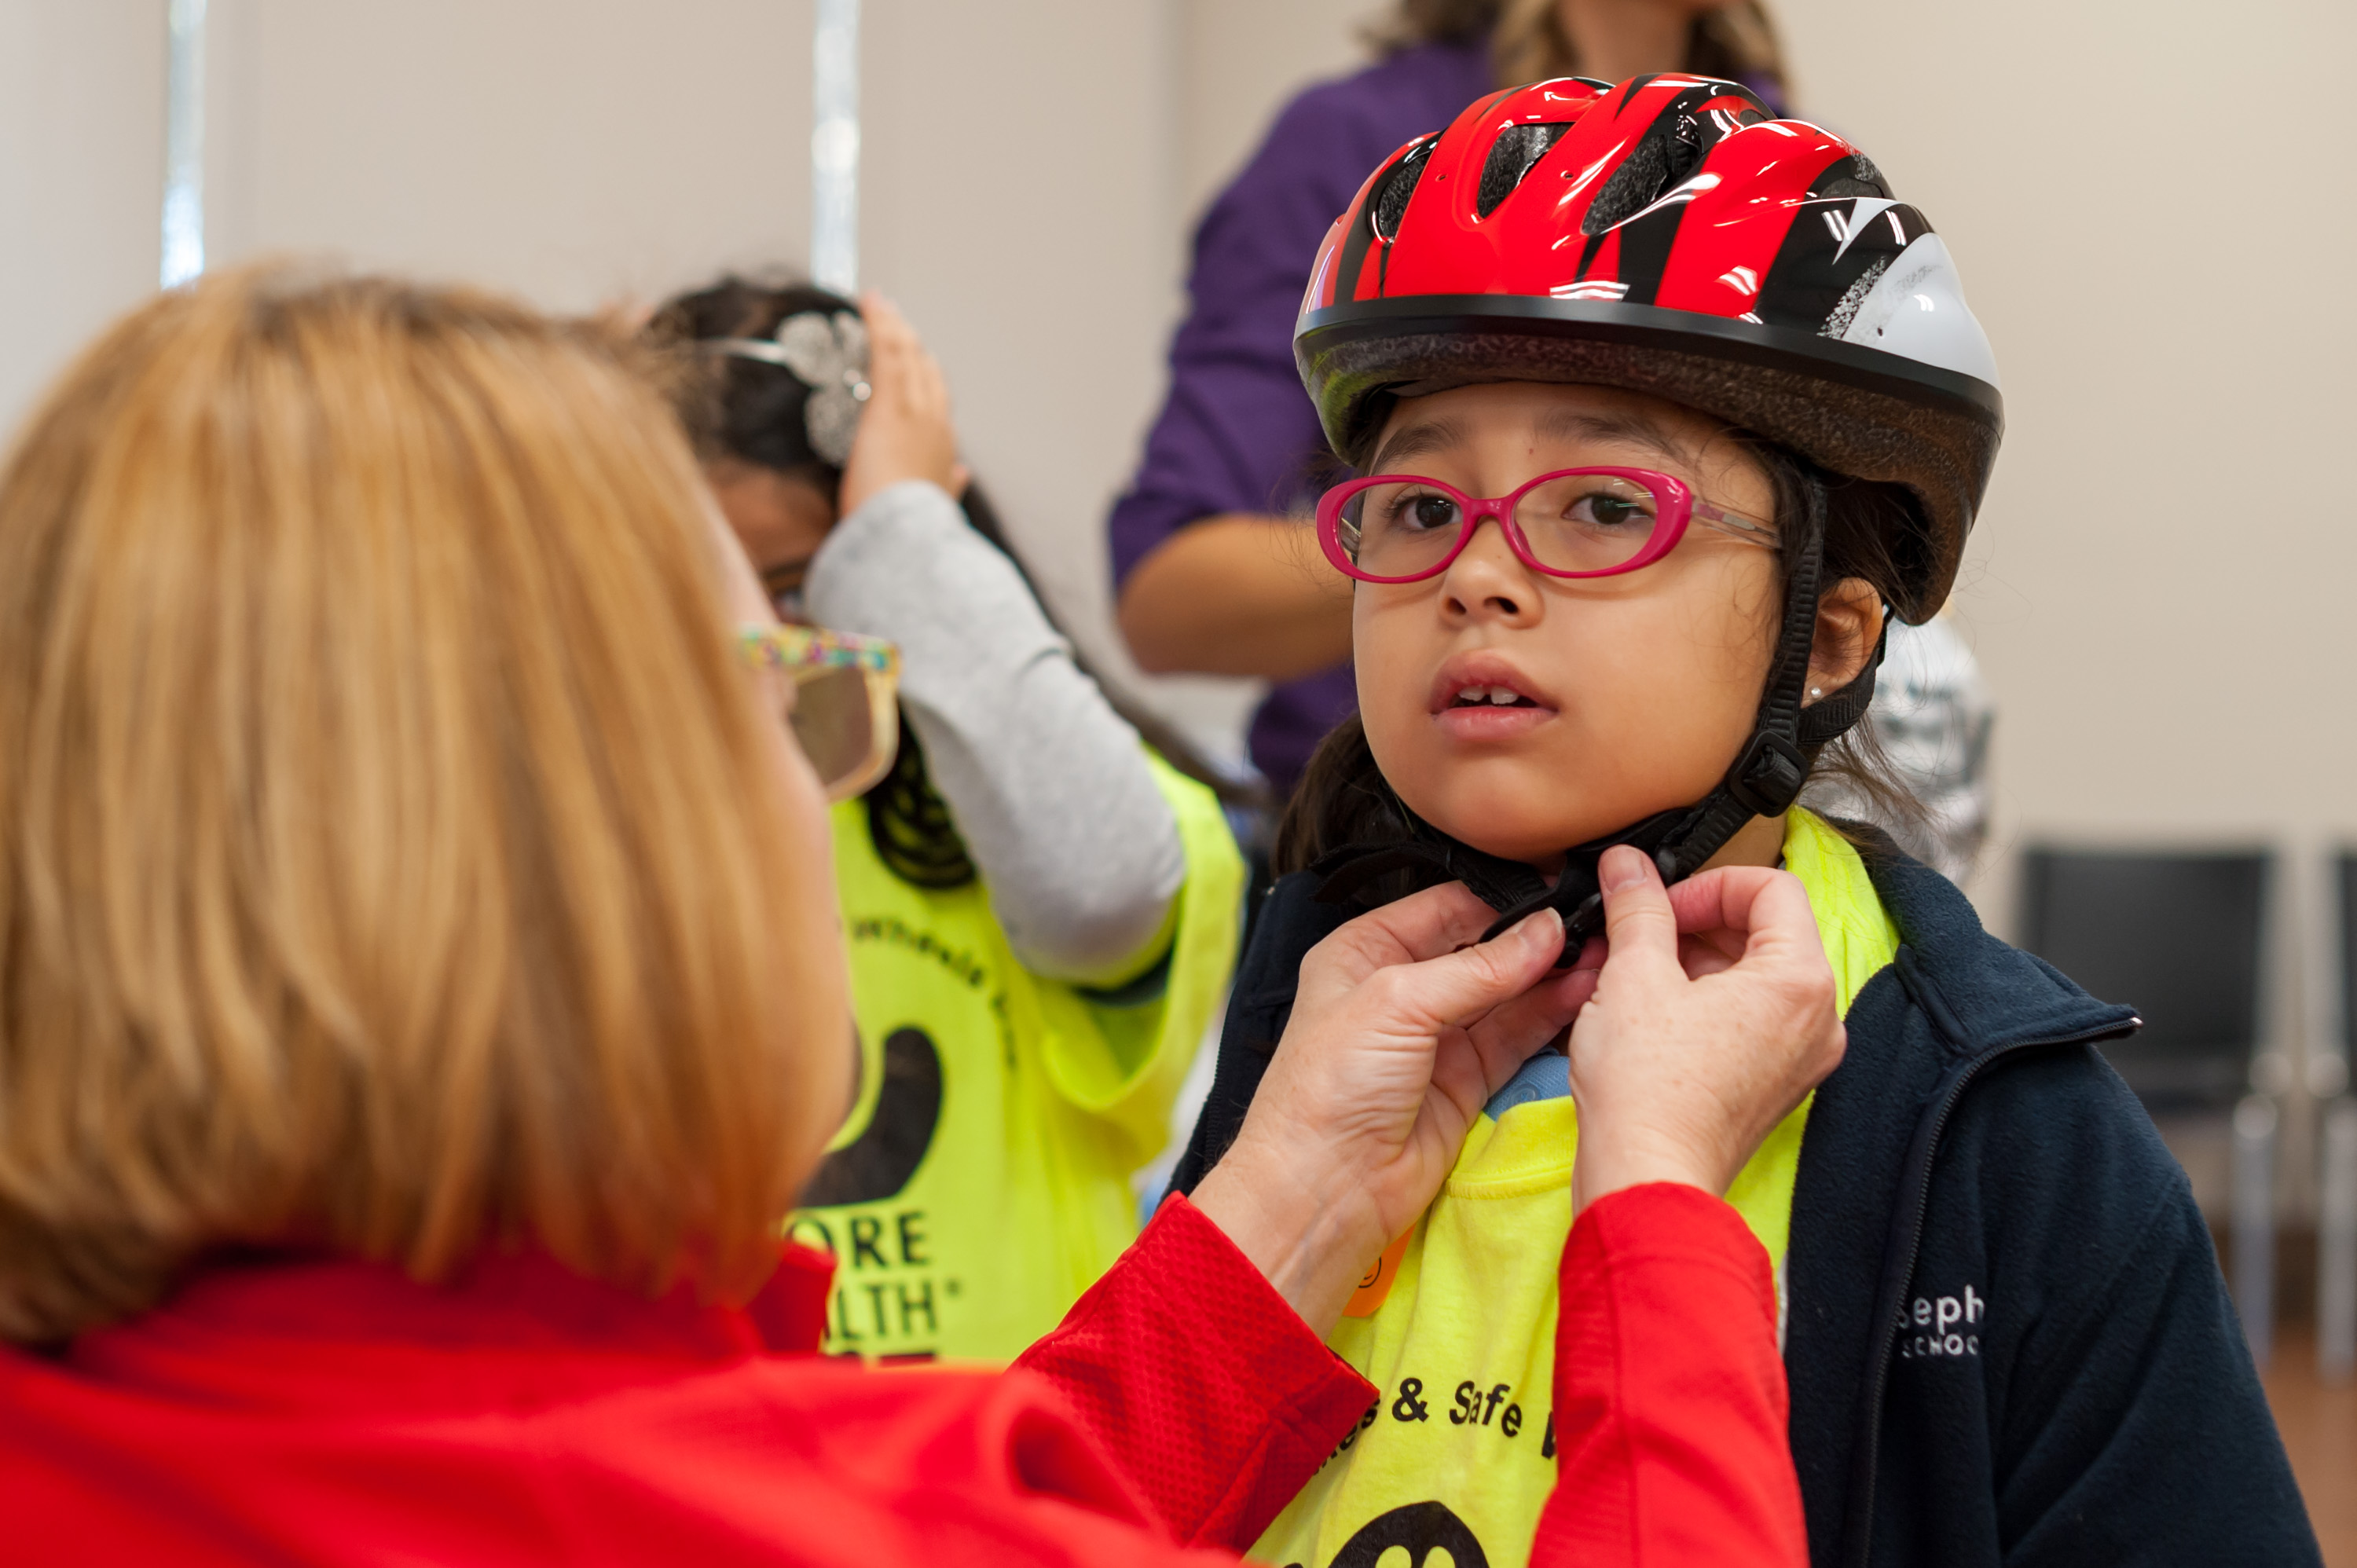 Girl trying on a helmet with More Health